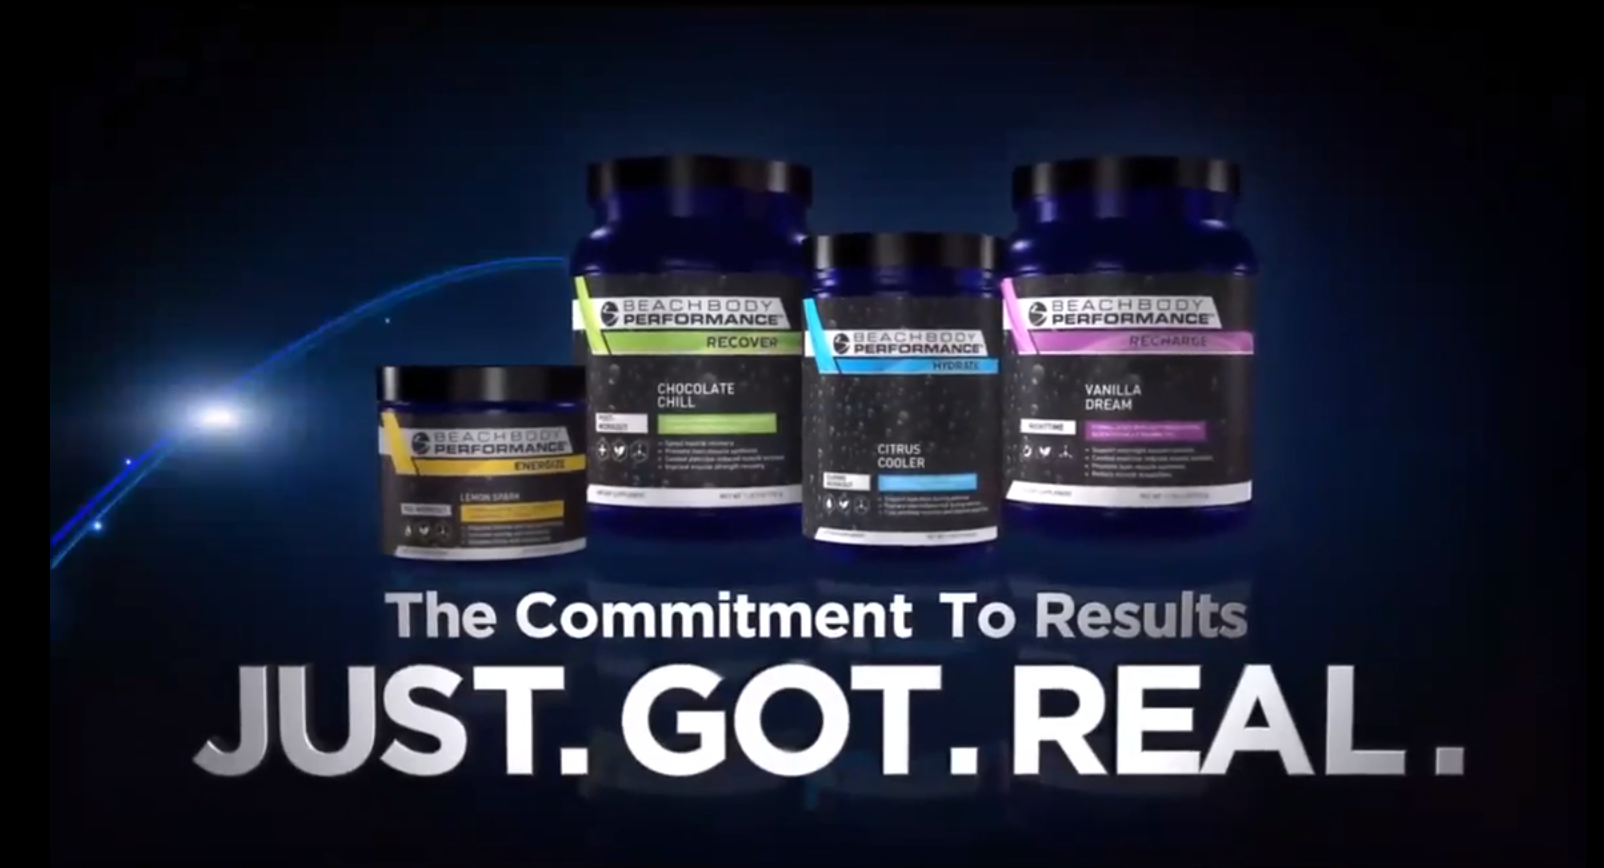 Best Beachbody Supplements